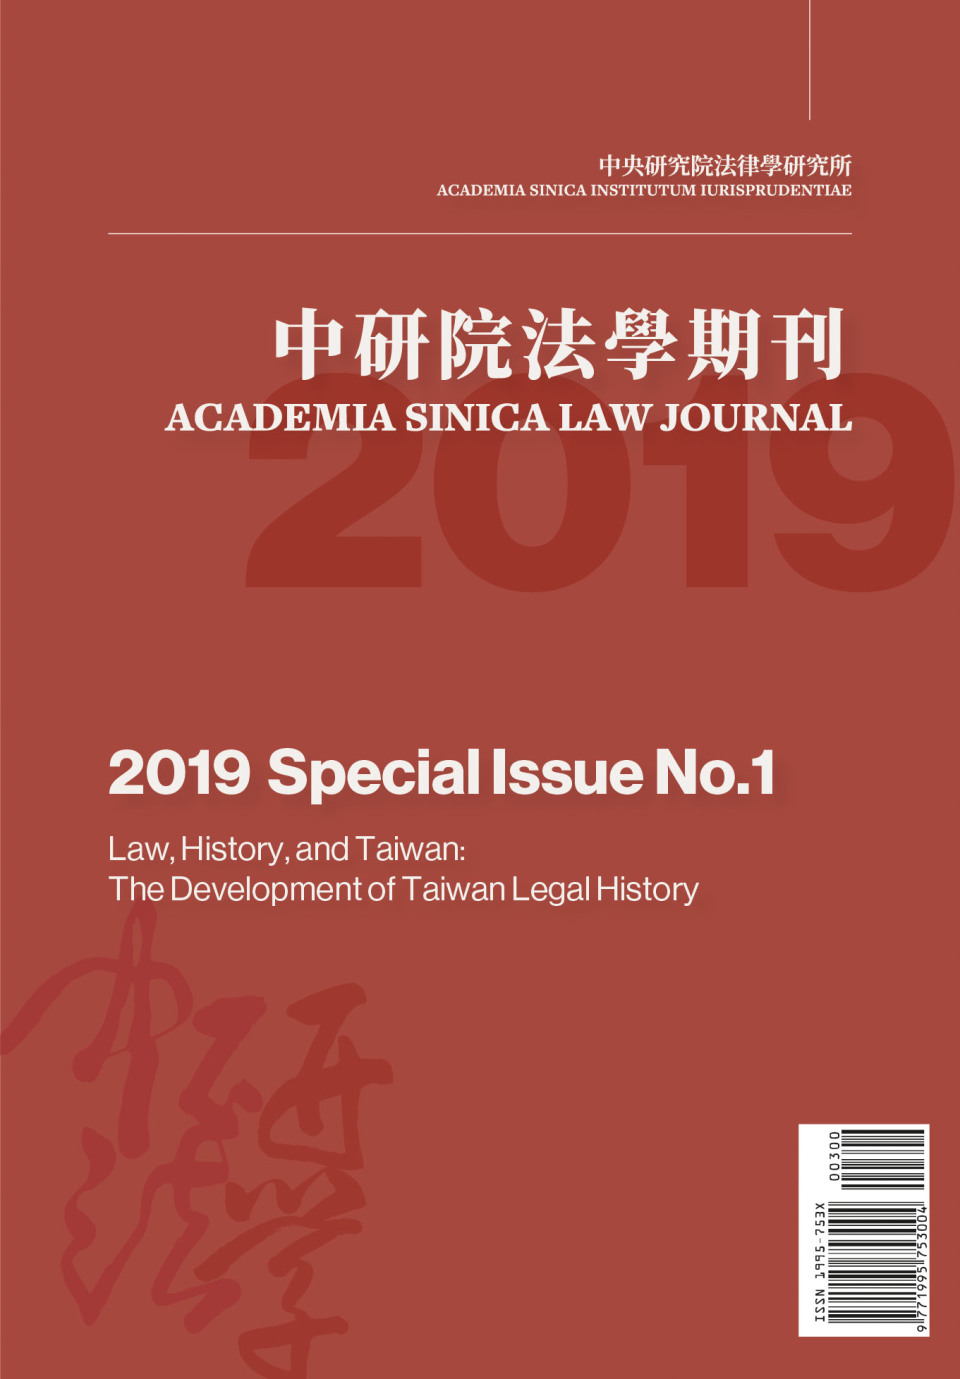 2019 Special Issue No.1